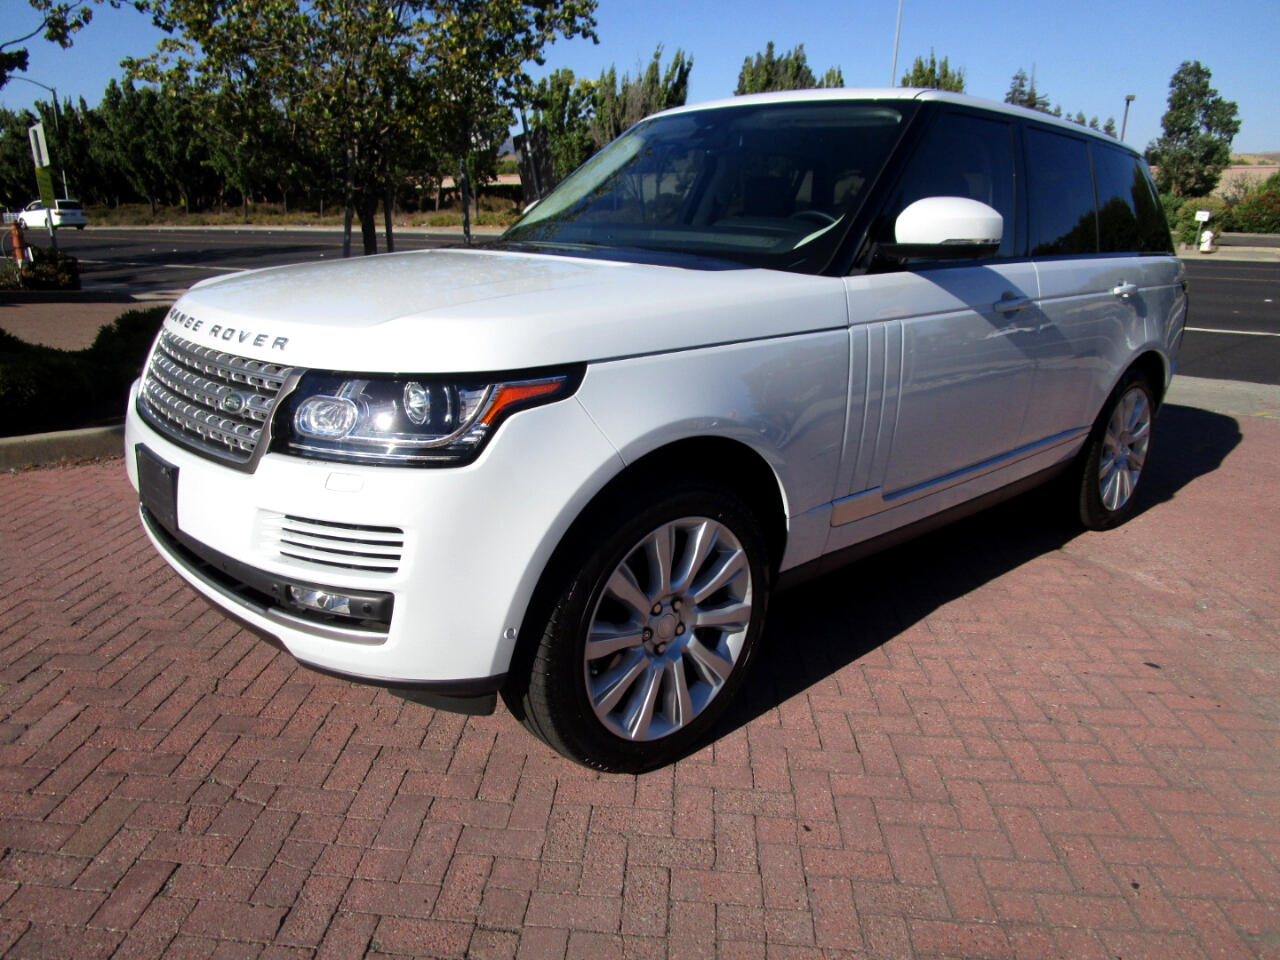 2015 Land Rover Range Rover S/C 5.0 510 HP**DRIVER ASSIST PKG**360 CAMS**HEAT/